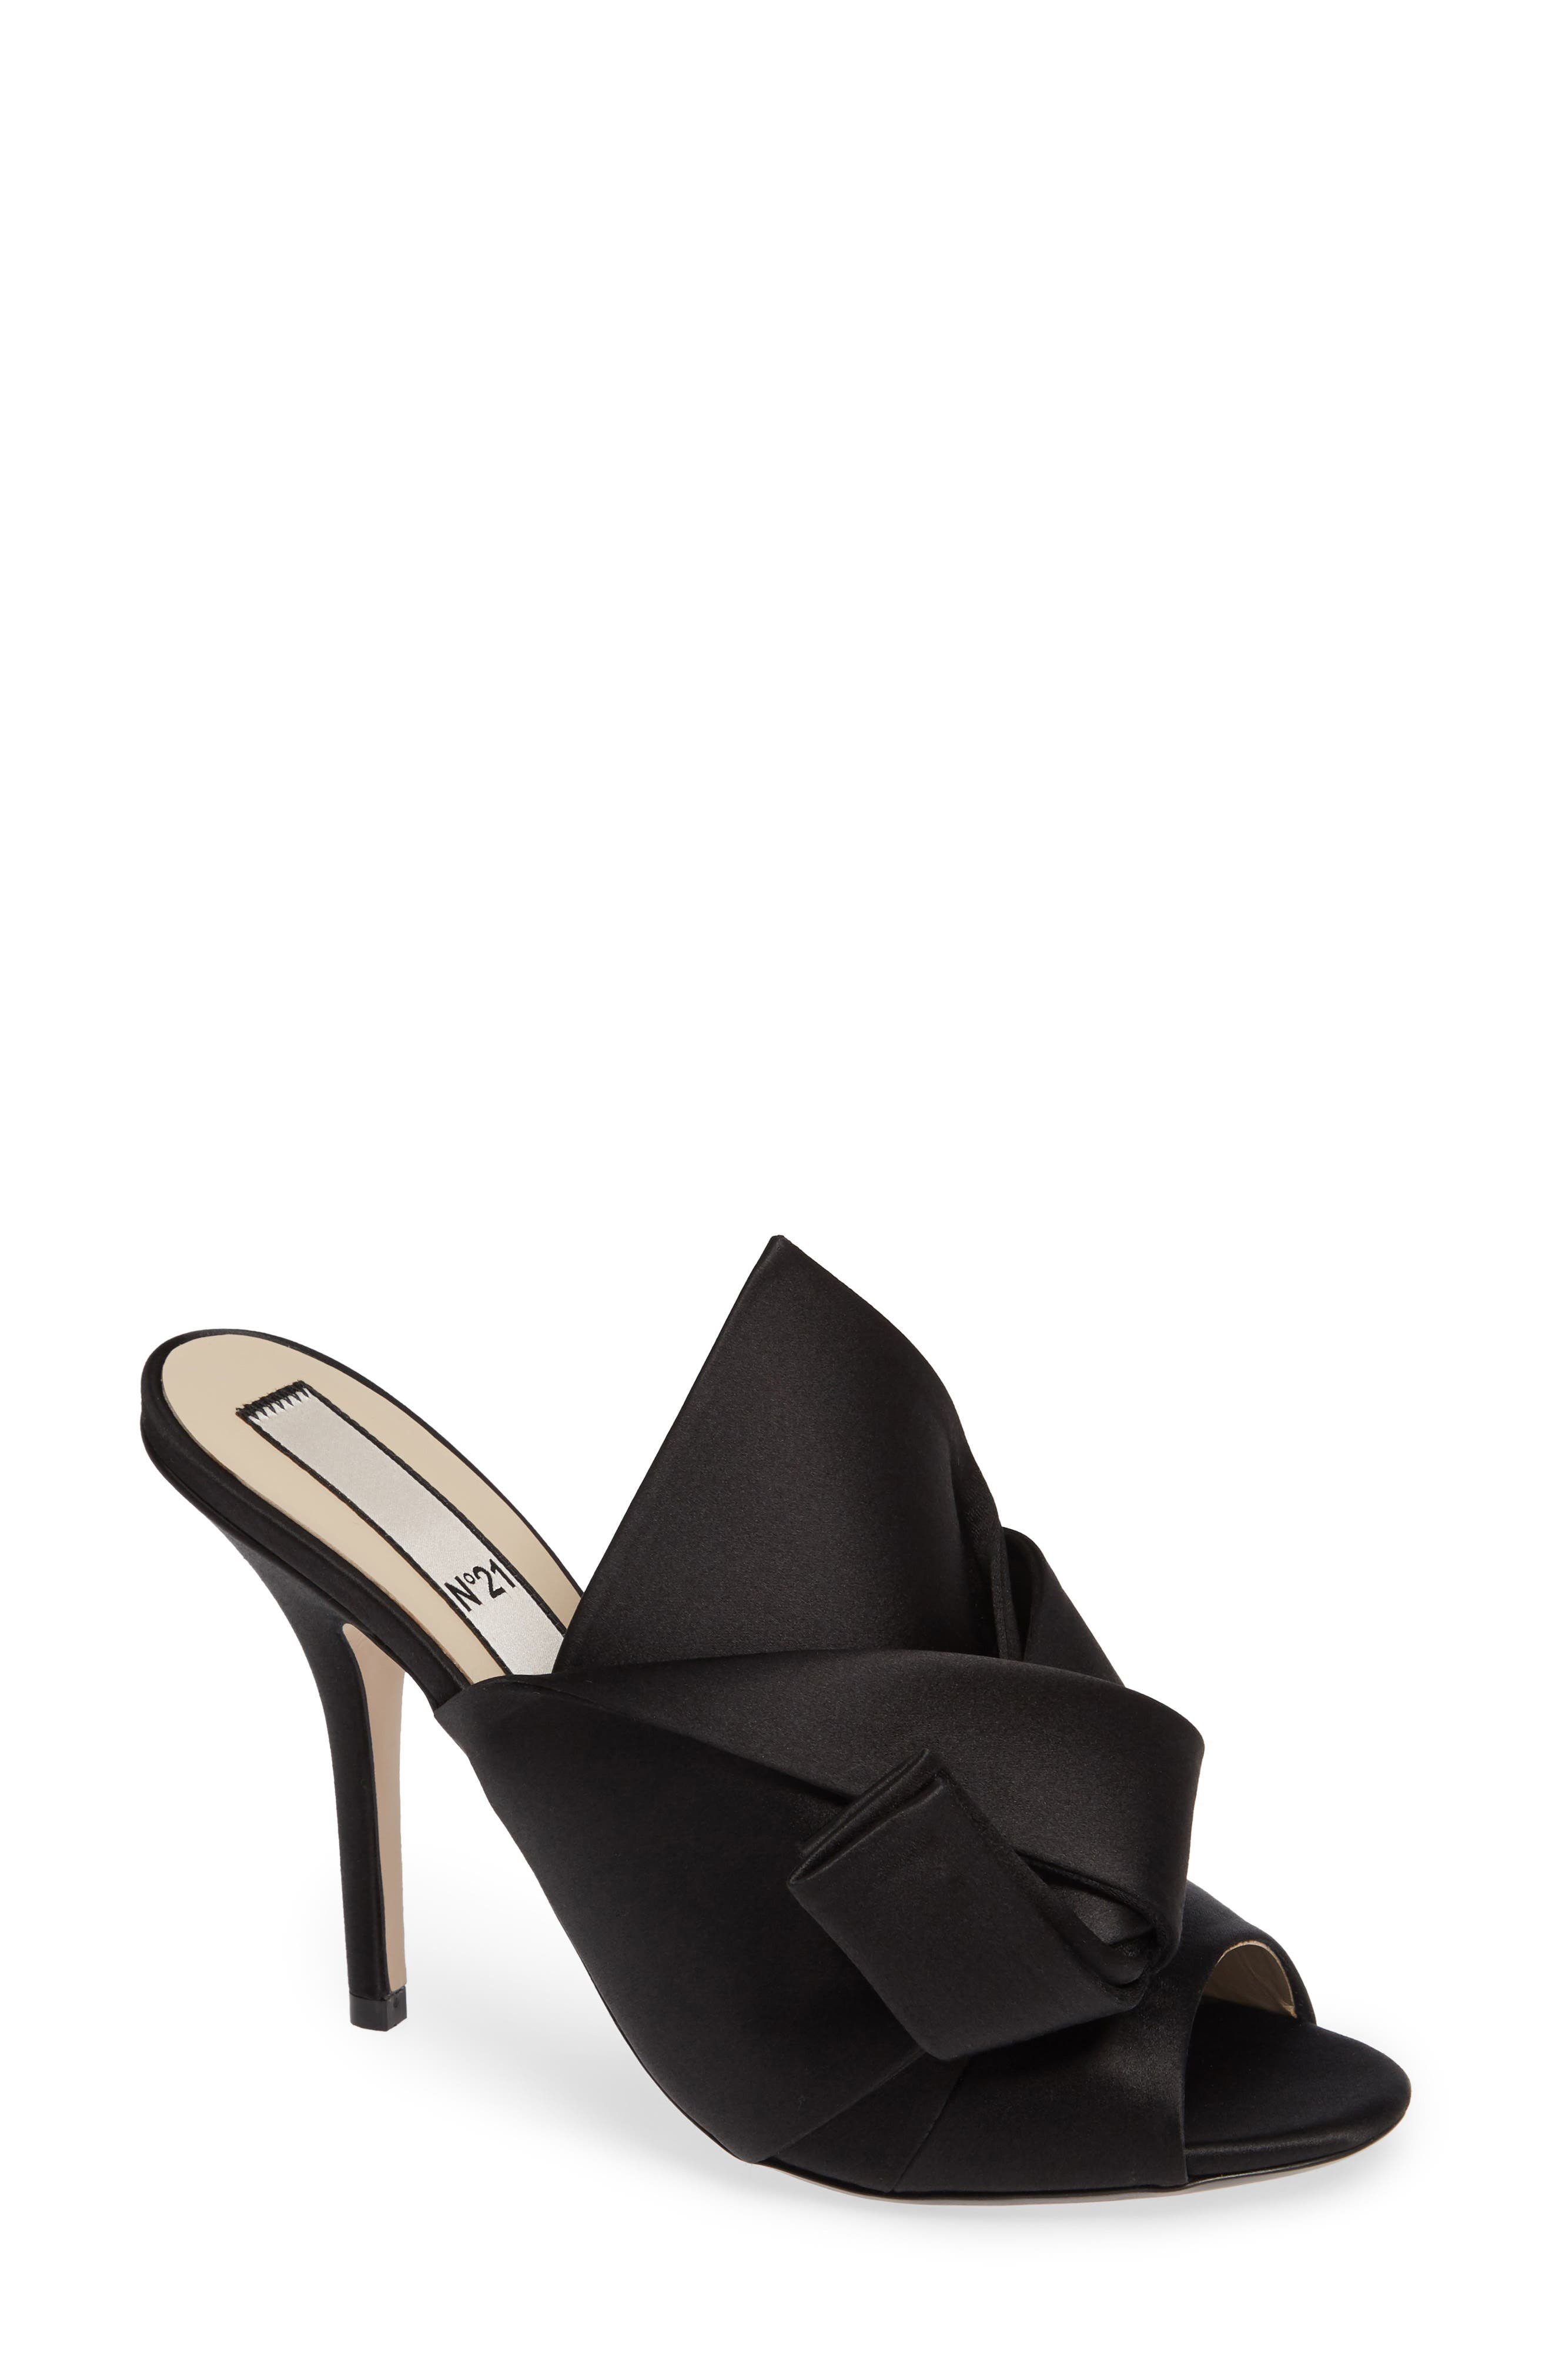 Bow Sandal,                             Main thumbnail 1, color,                             BLACK FABRIC